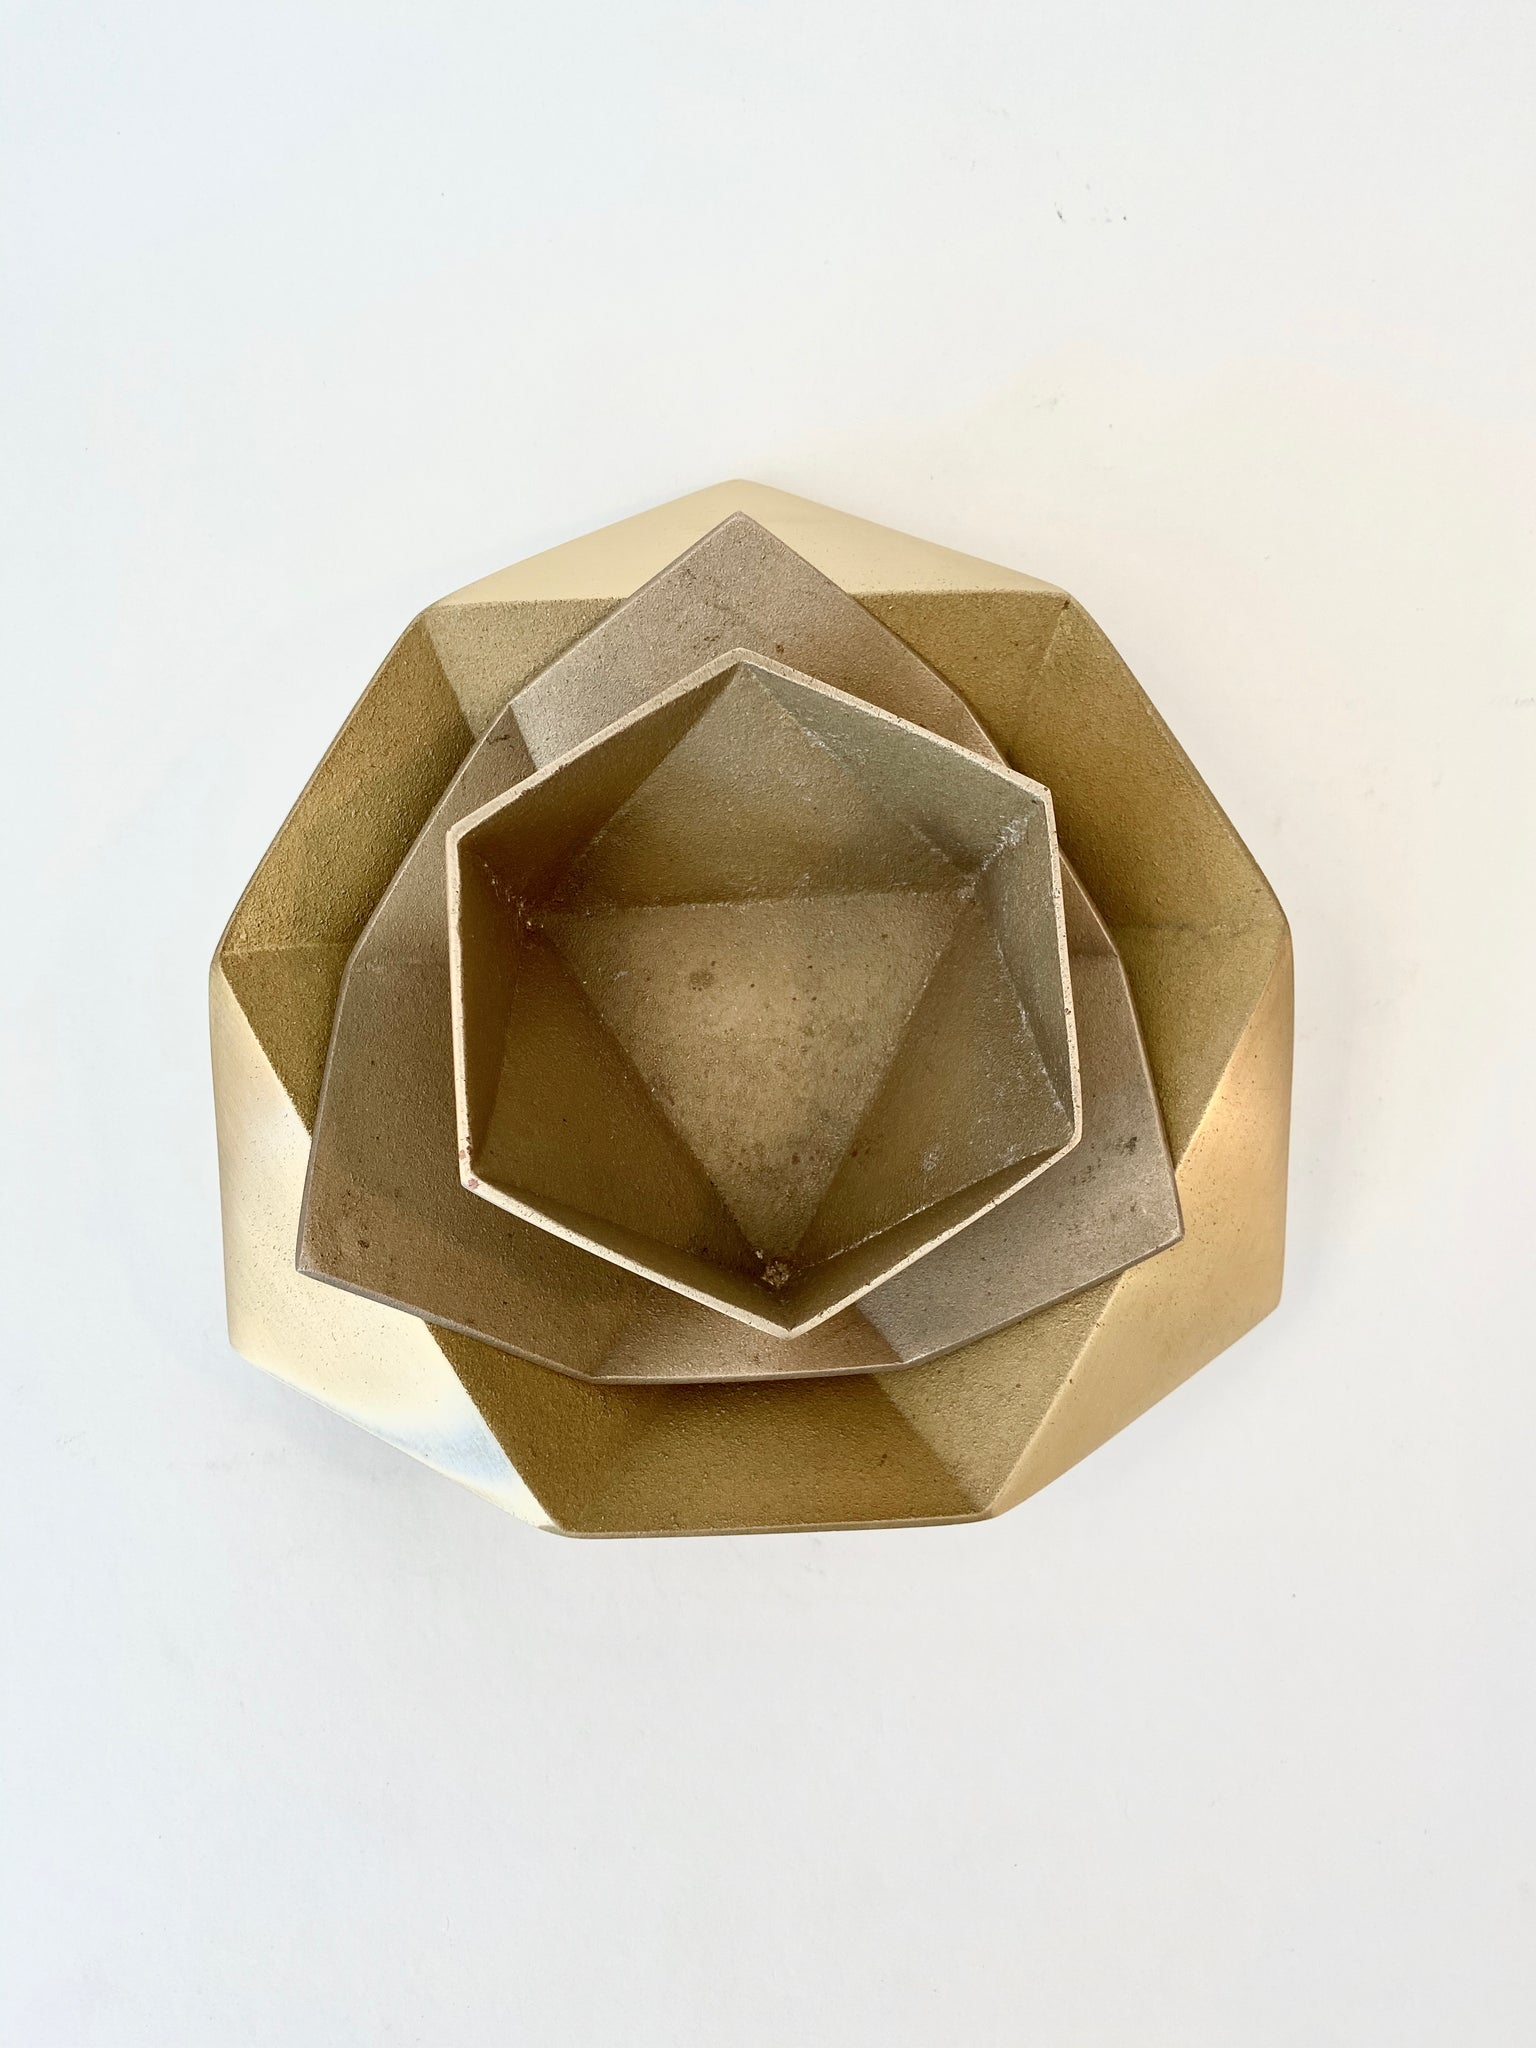 How to Make an Origami Bowl W/ Square Paper - Snapguide | 2048x1536